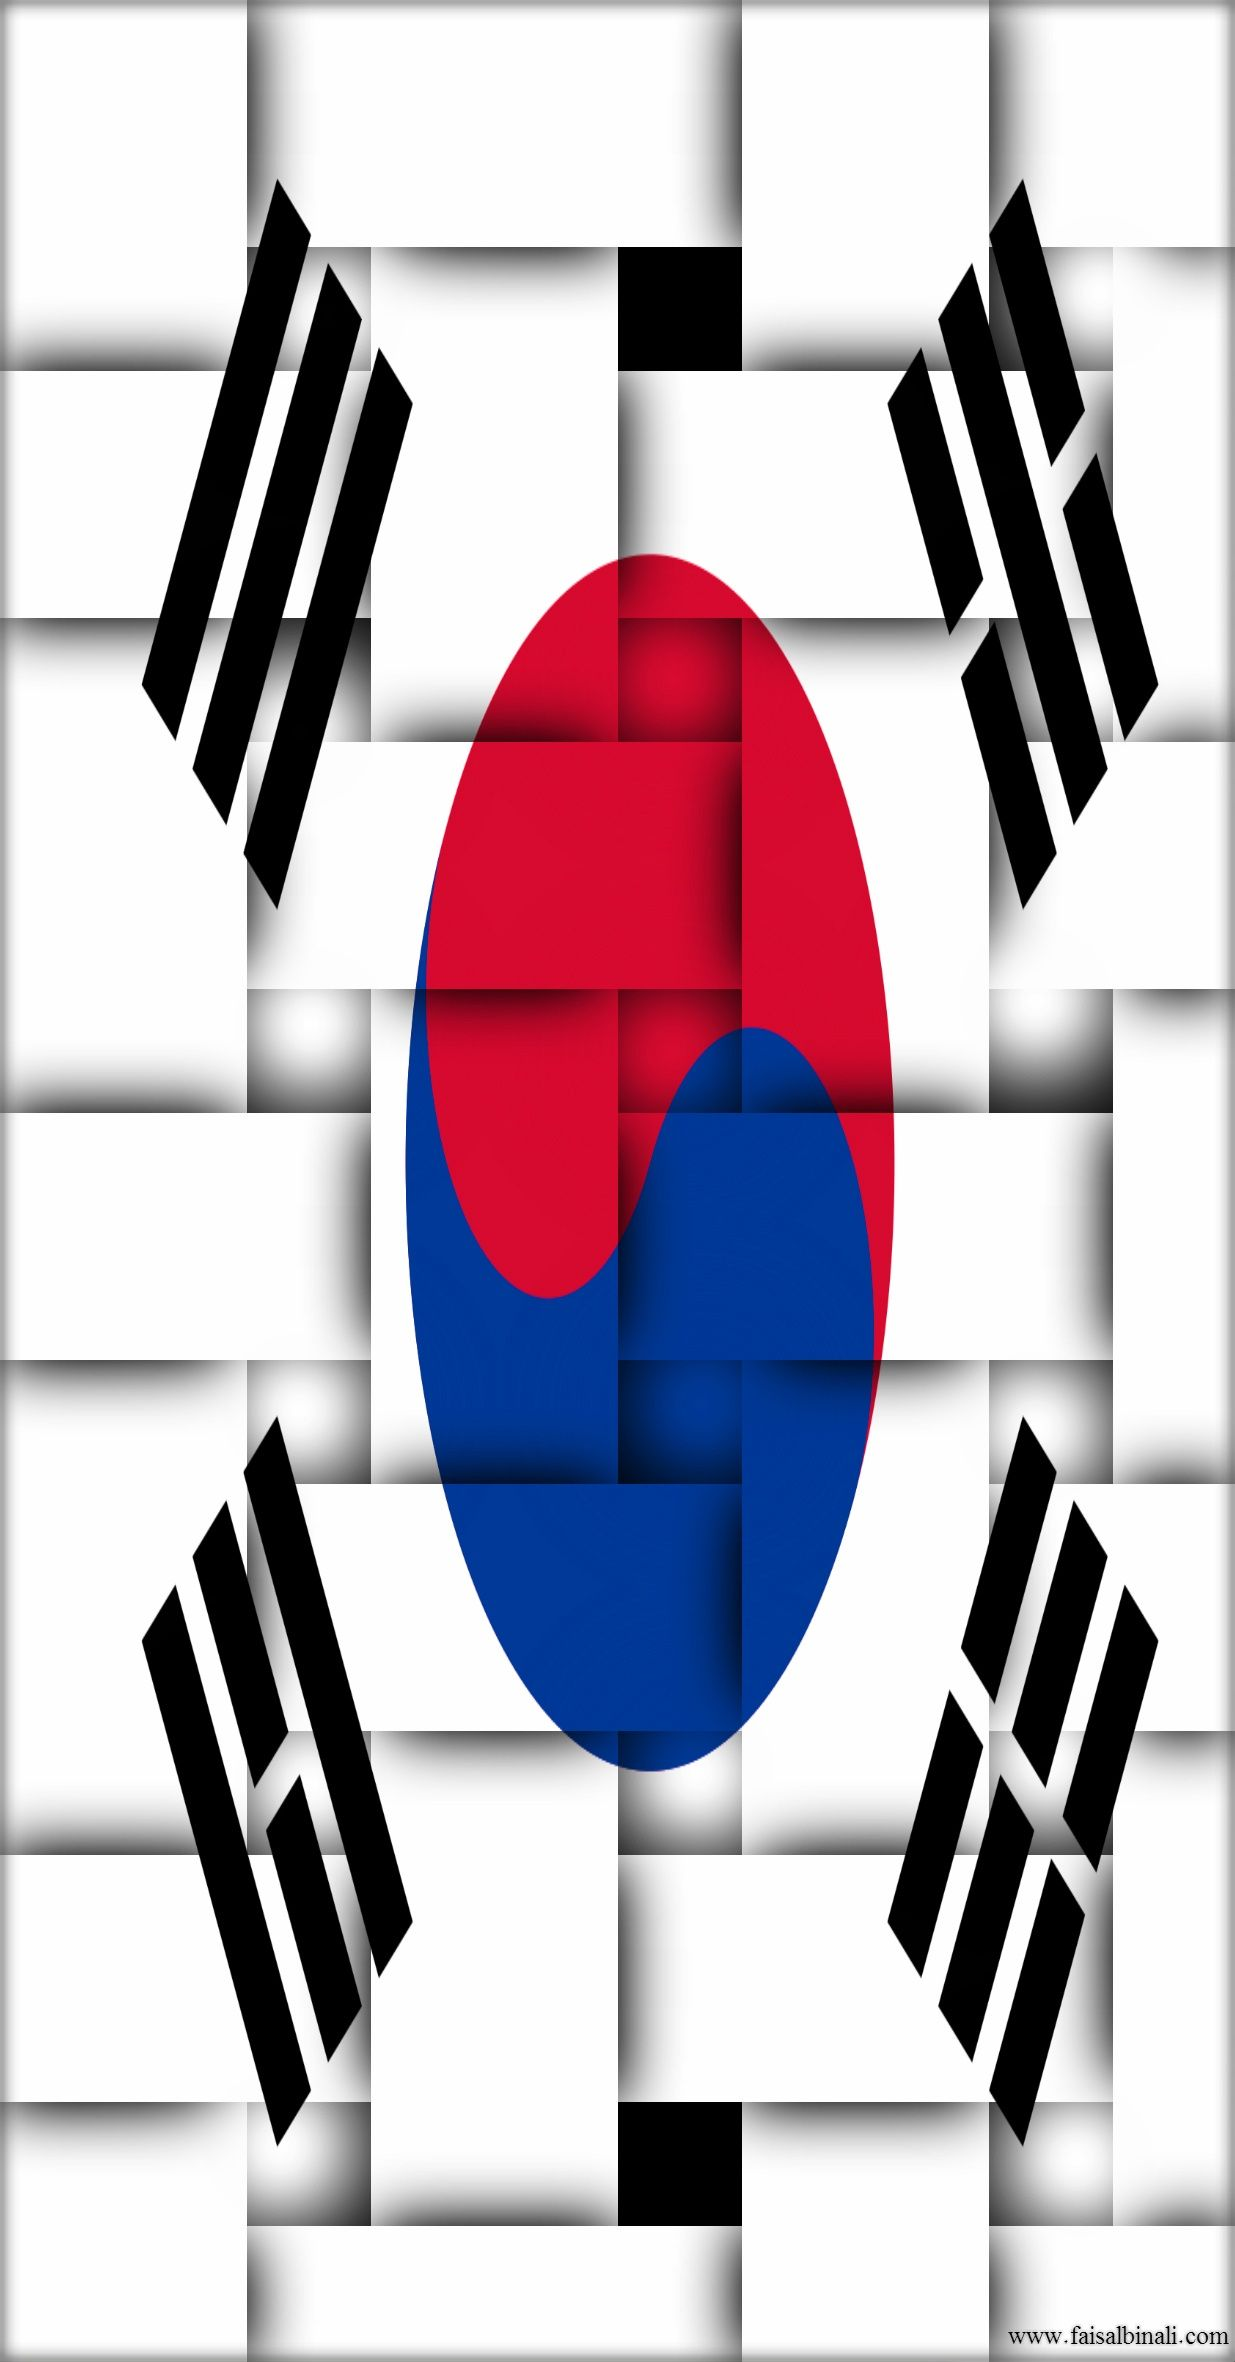 Southkorea Flags Artwork Wallpapers For Smartphones Tablets